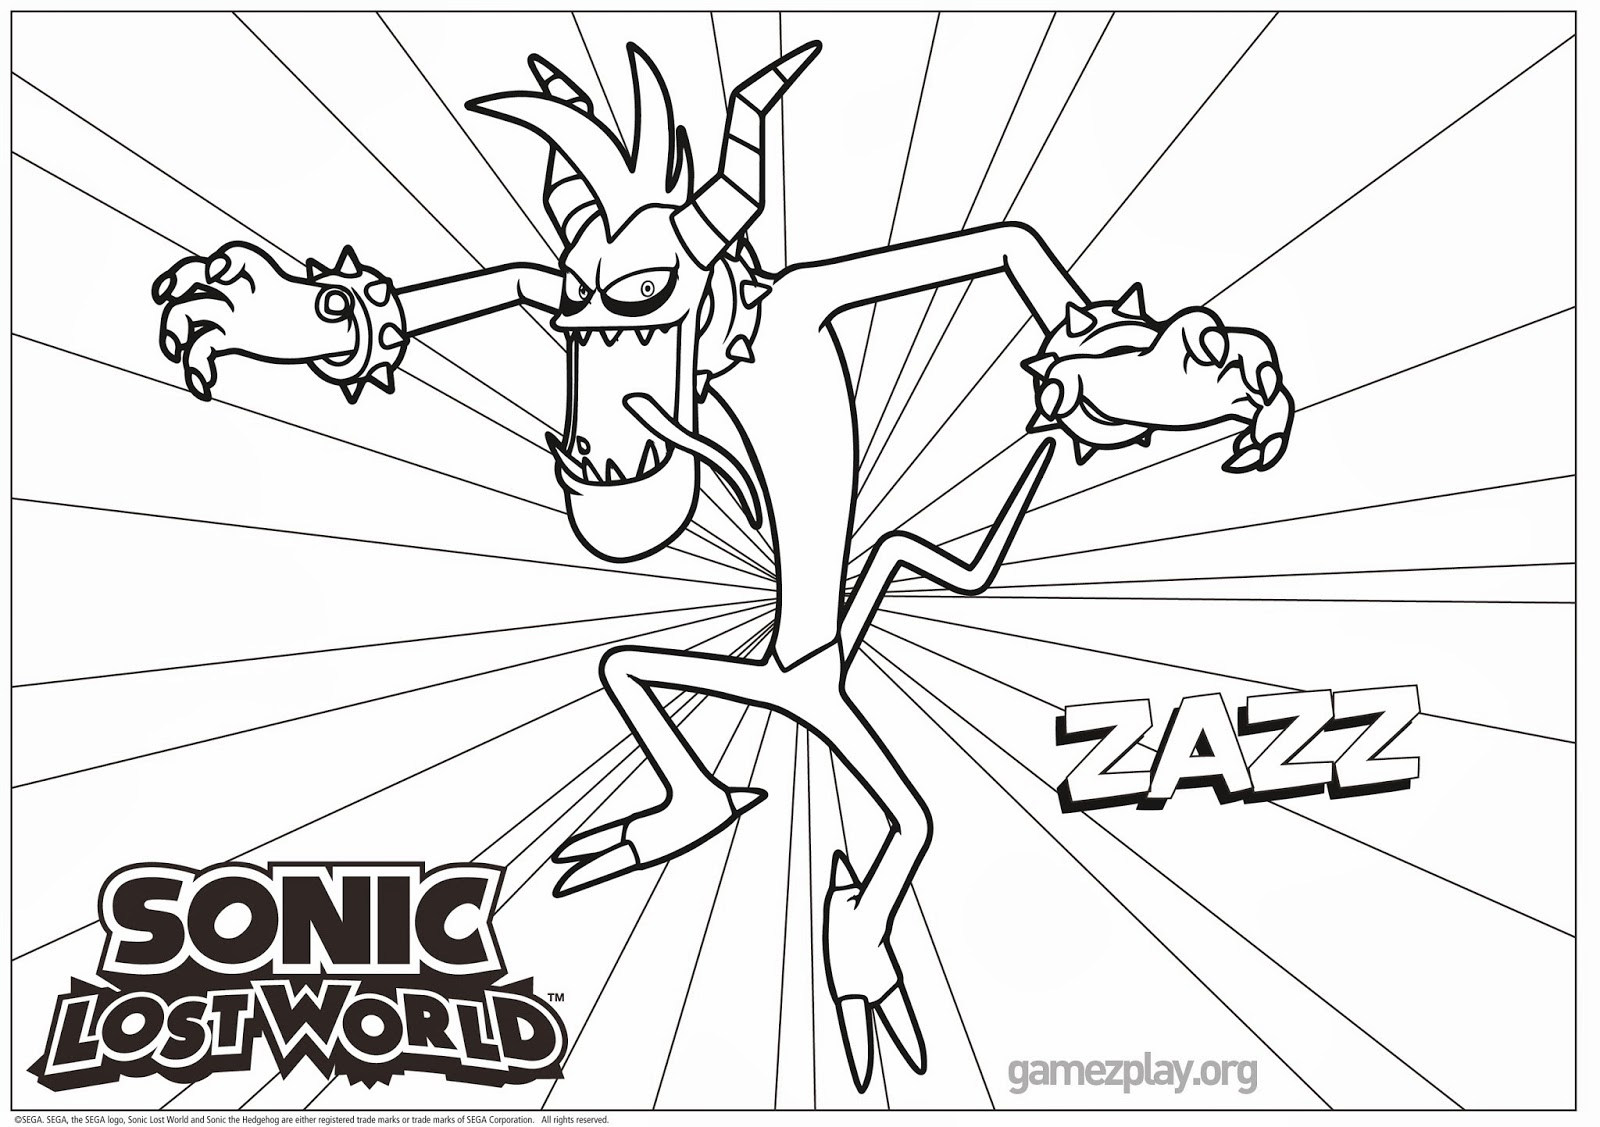 Sonic lost world coloring pages print